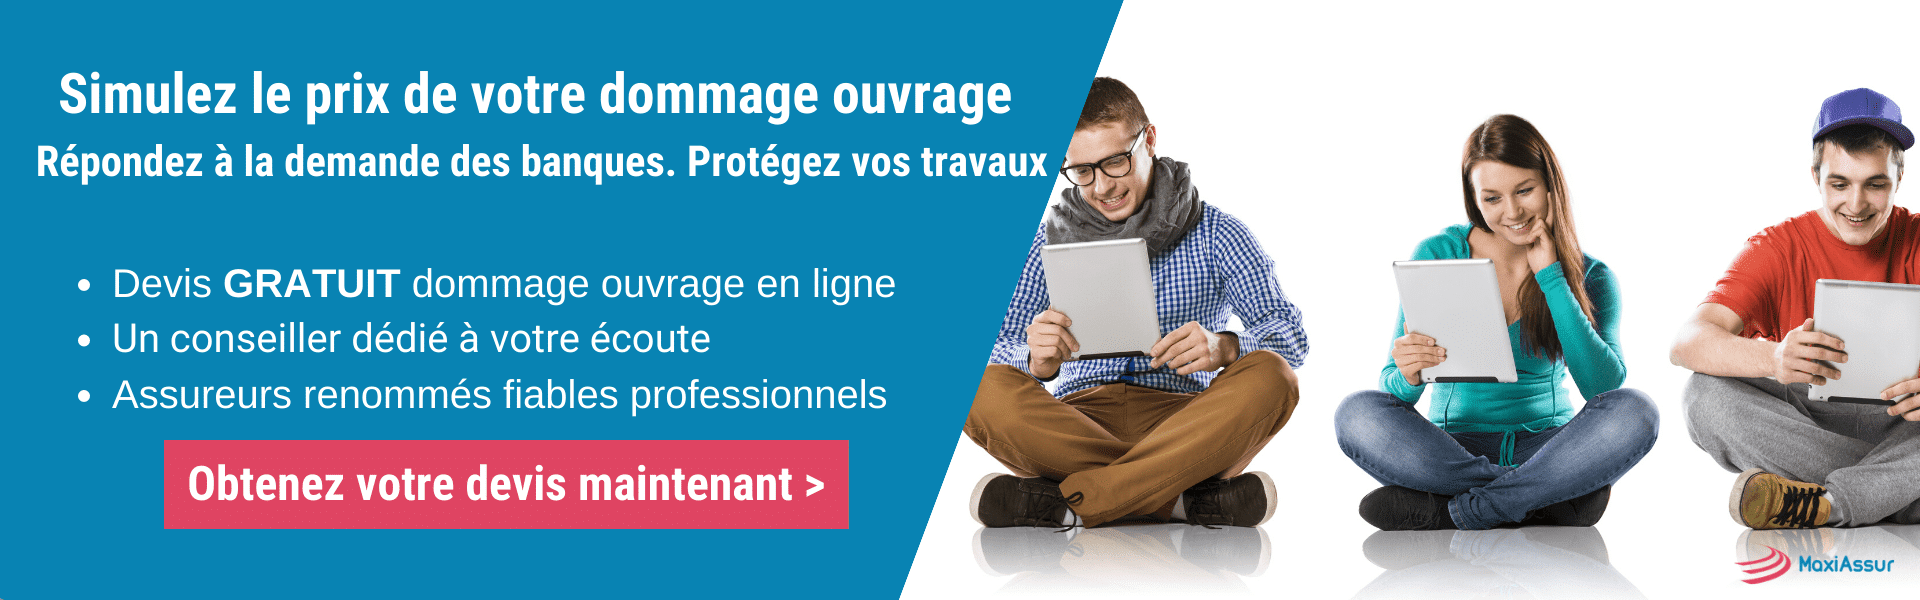 simulation dommage ouvrage